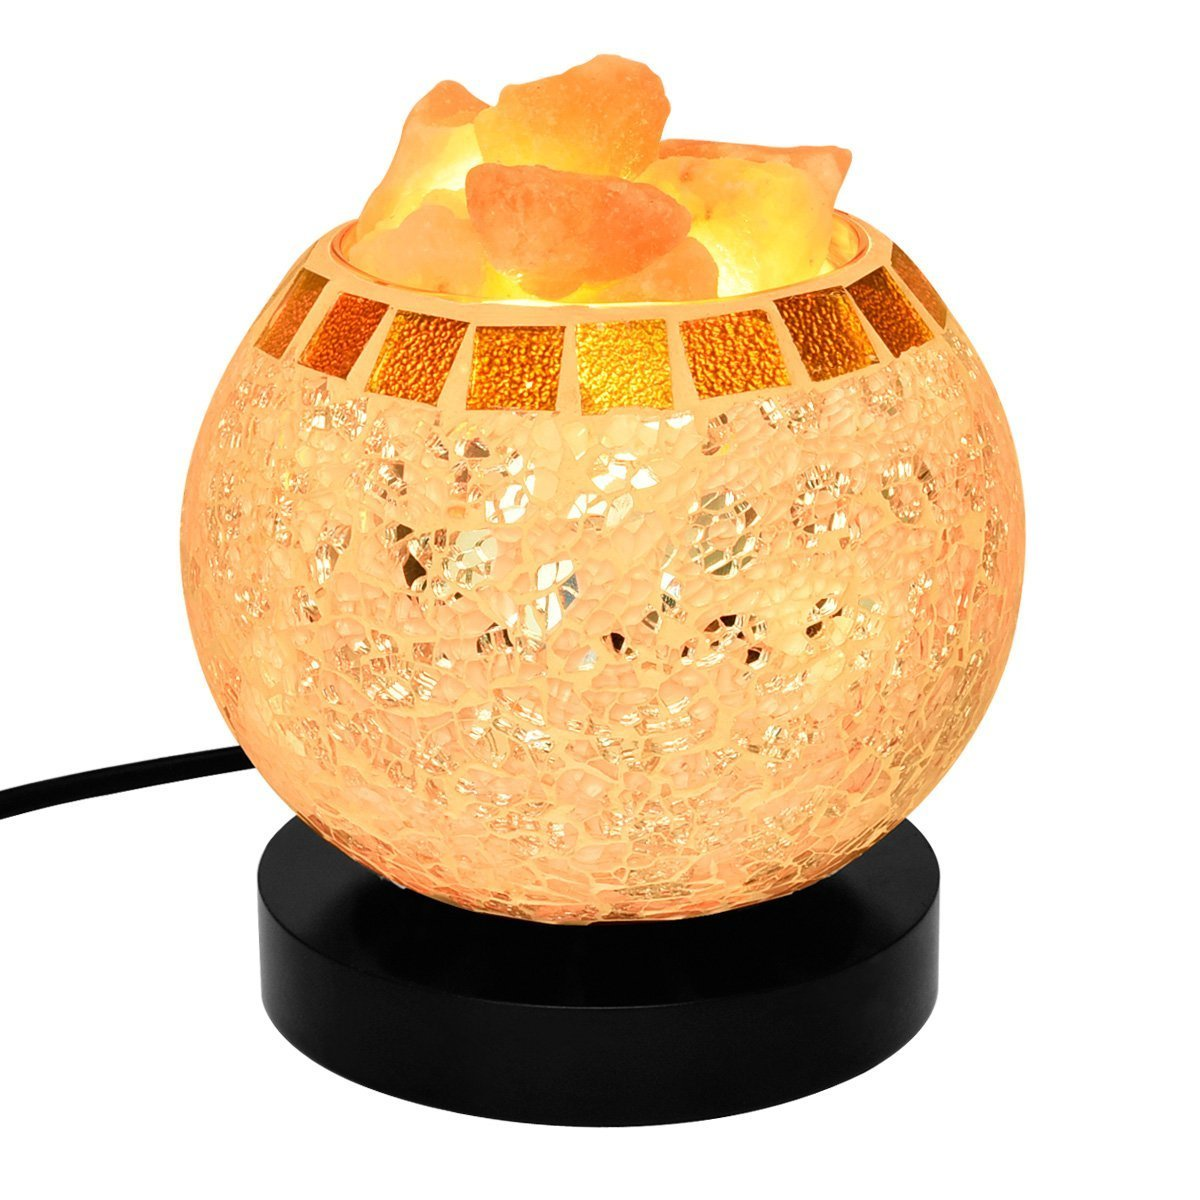 Himalayan Salt Lamp Natural Crystal Salt Lamp Night Light Salt Chunks in Glass Bowl with Wood Base Bulb and Dimmer Control for Home Decorations and Gift by COOWOO